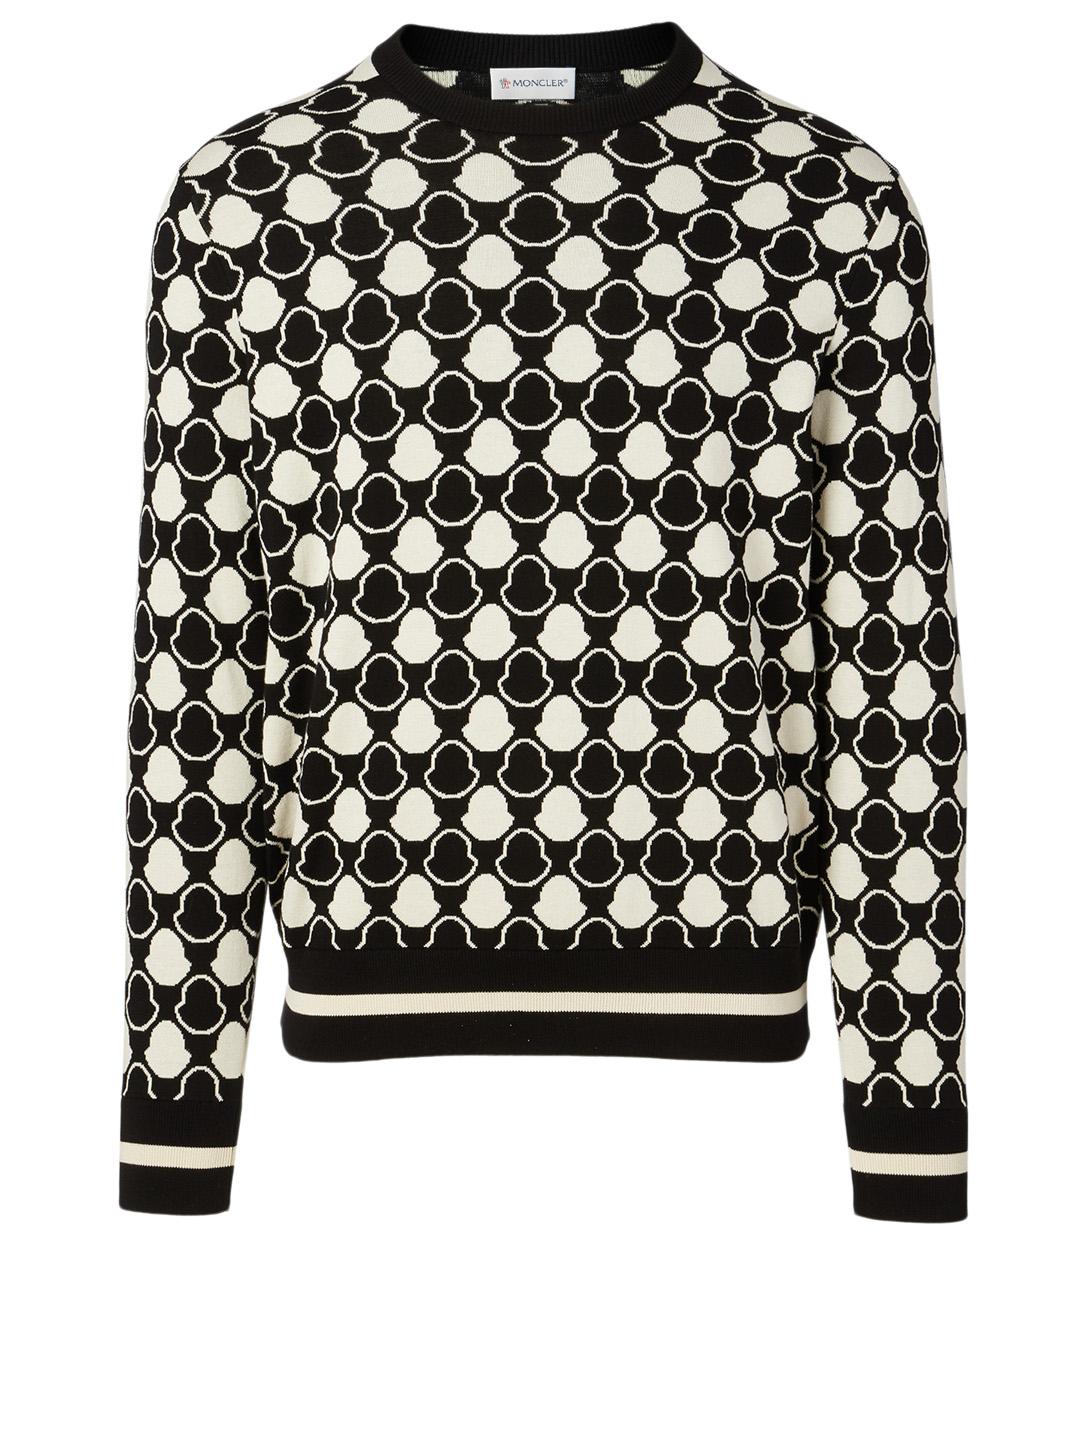 MONCLER Cotton Sweater In Logo Print Men's Black